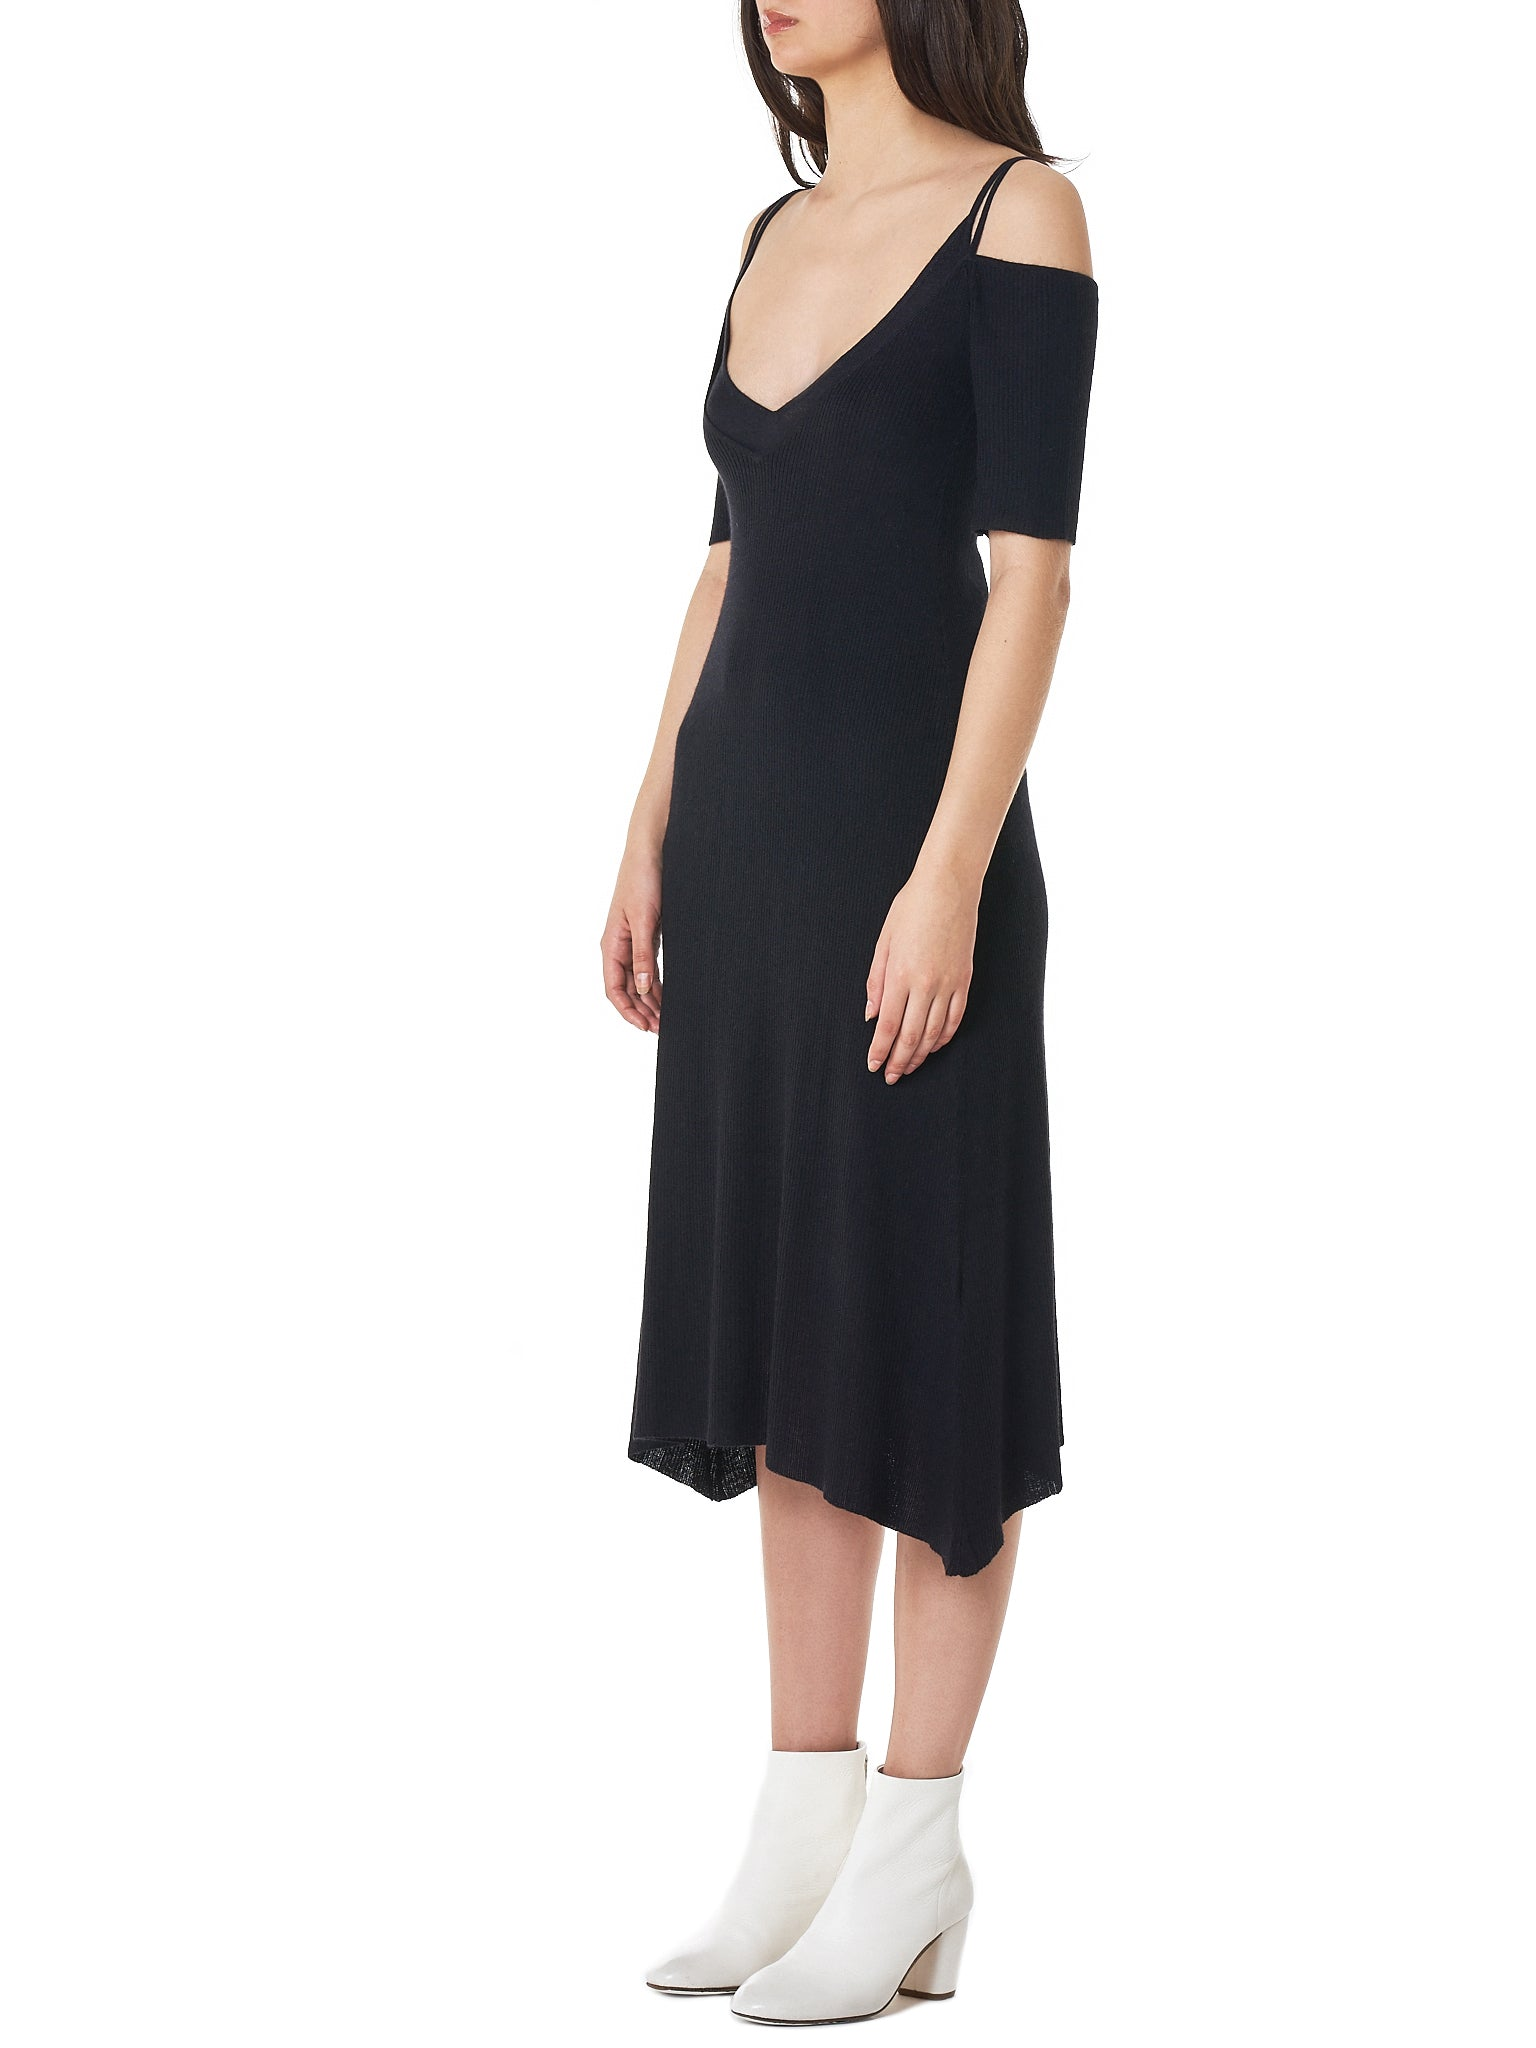 Ryan Roche Dress - Hlorenzo Side